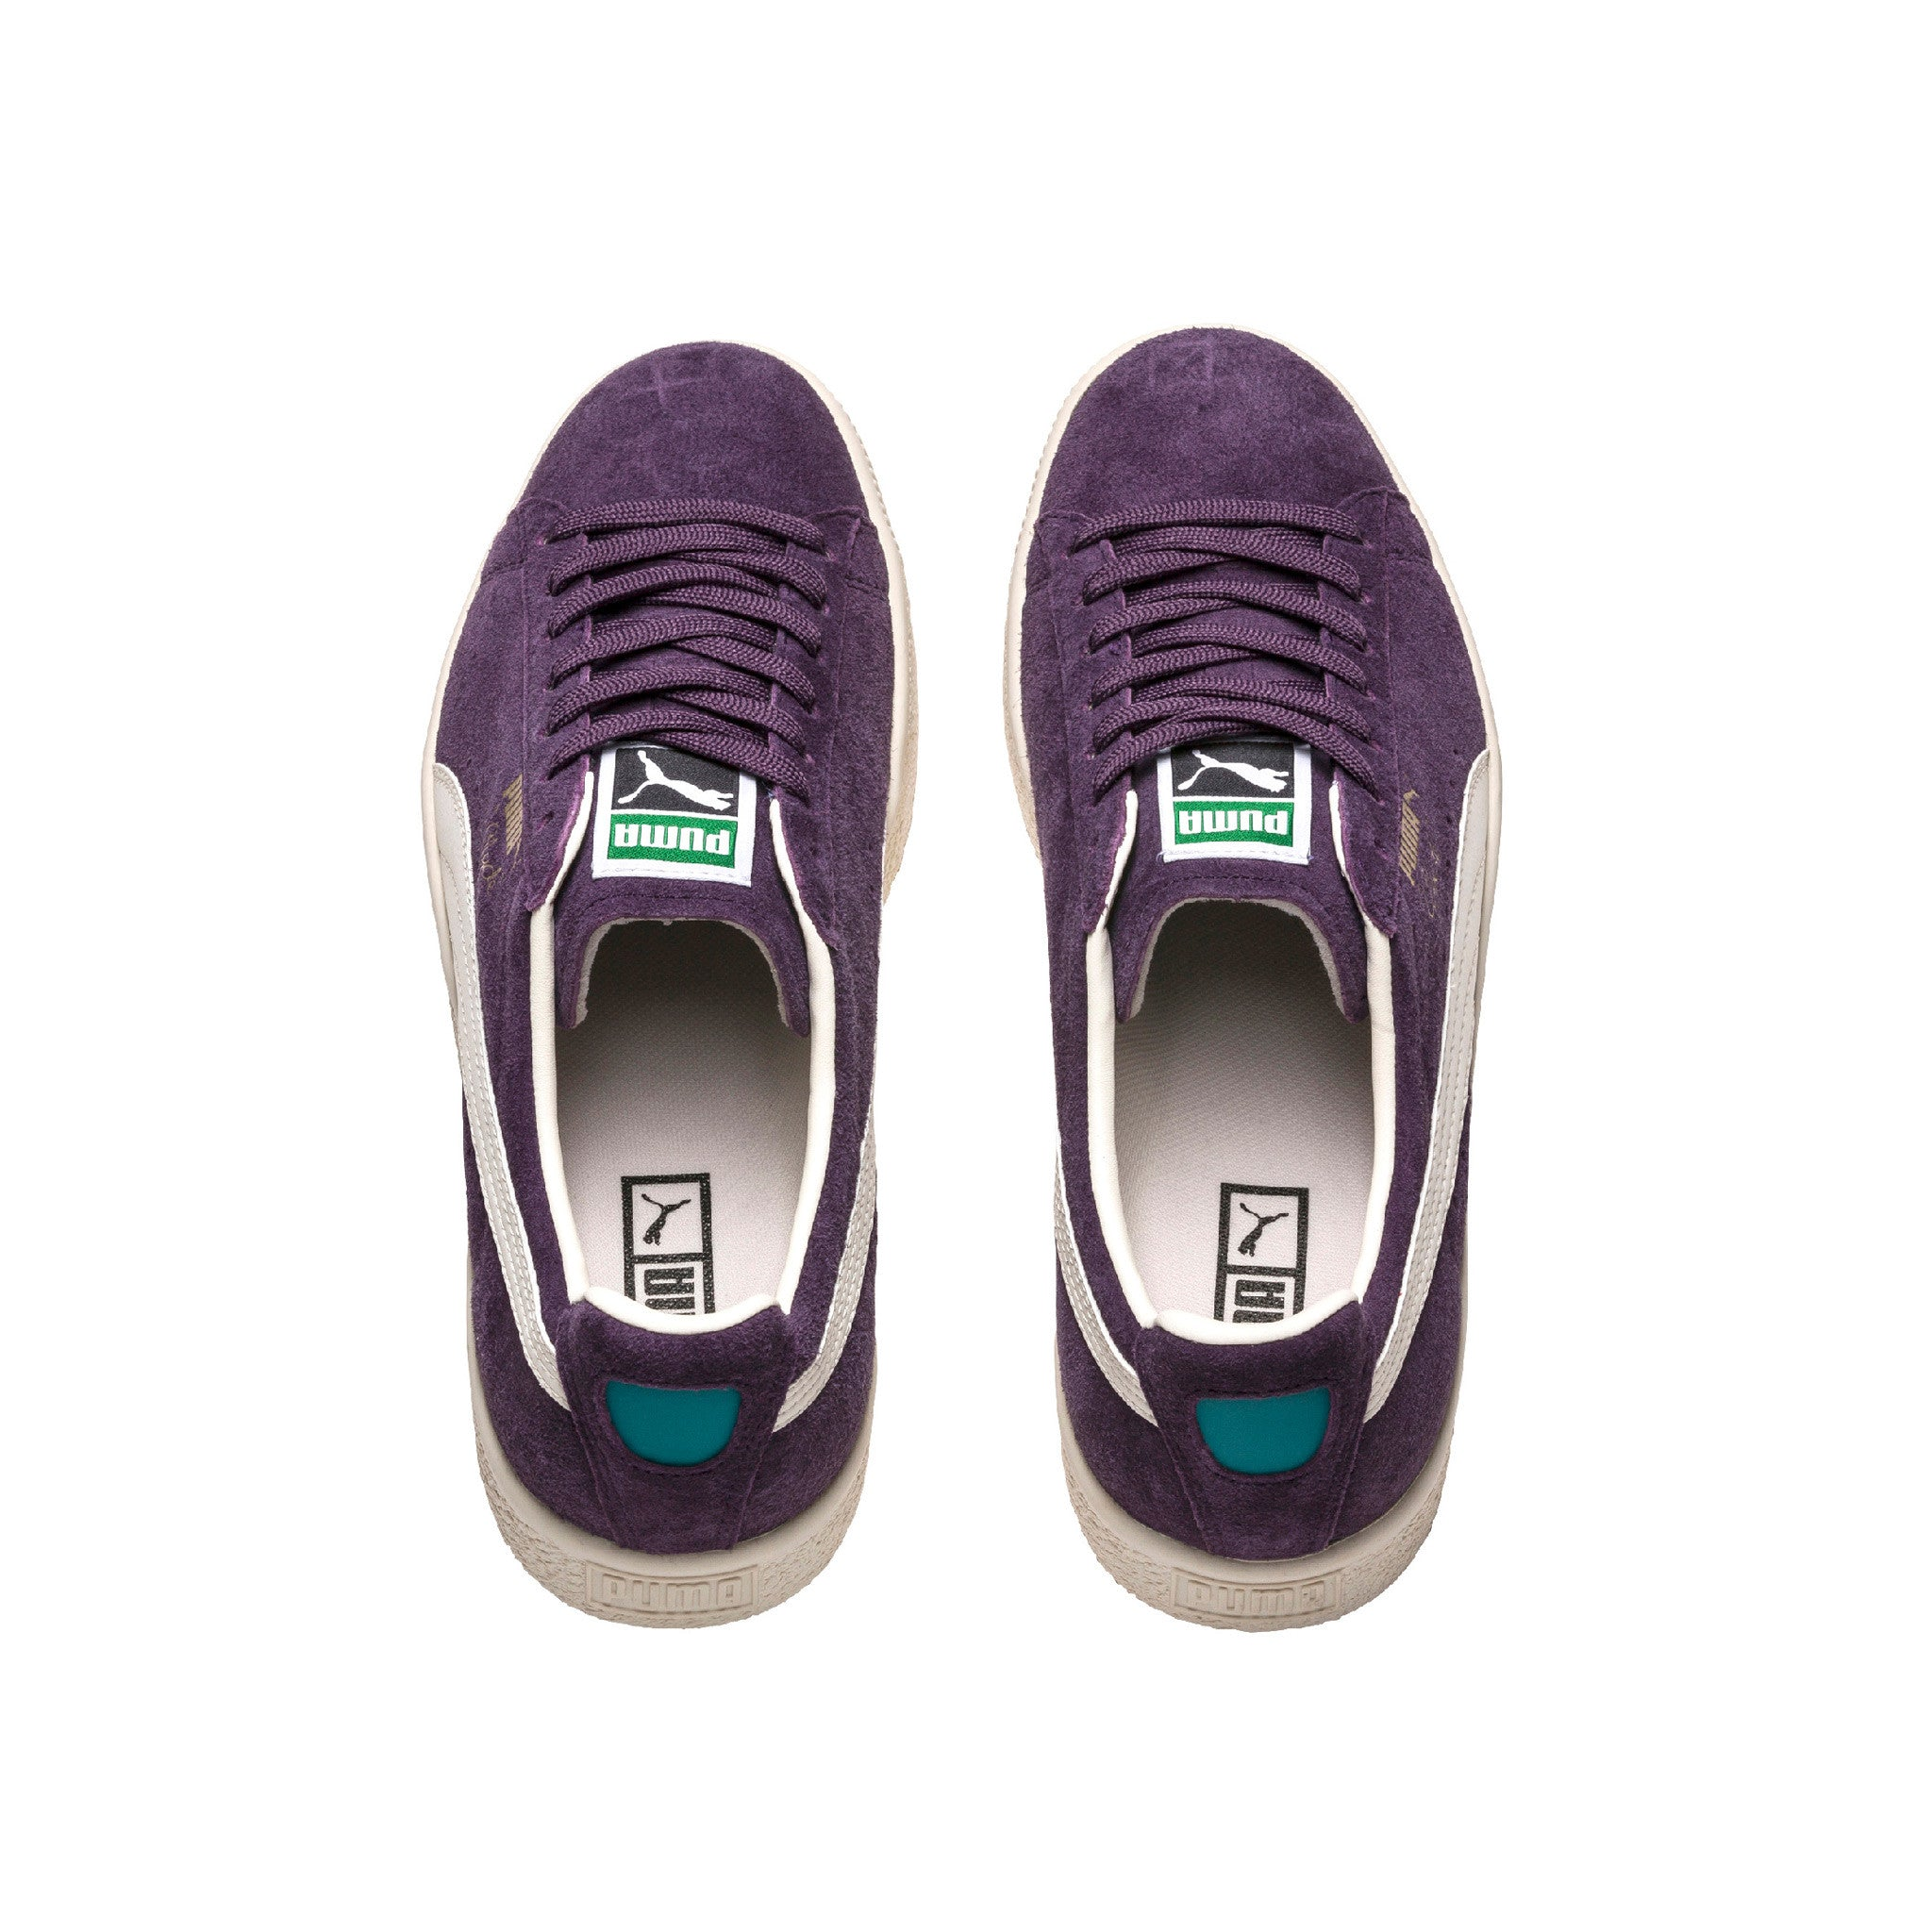 Clyde Premium Core Puma Sneakers Purple Top View